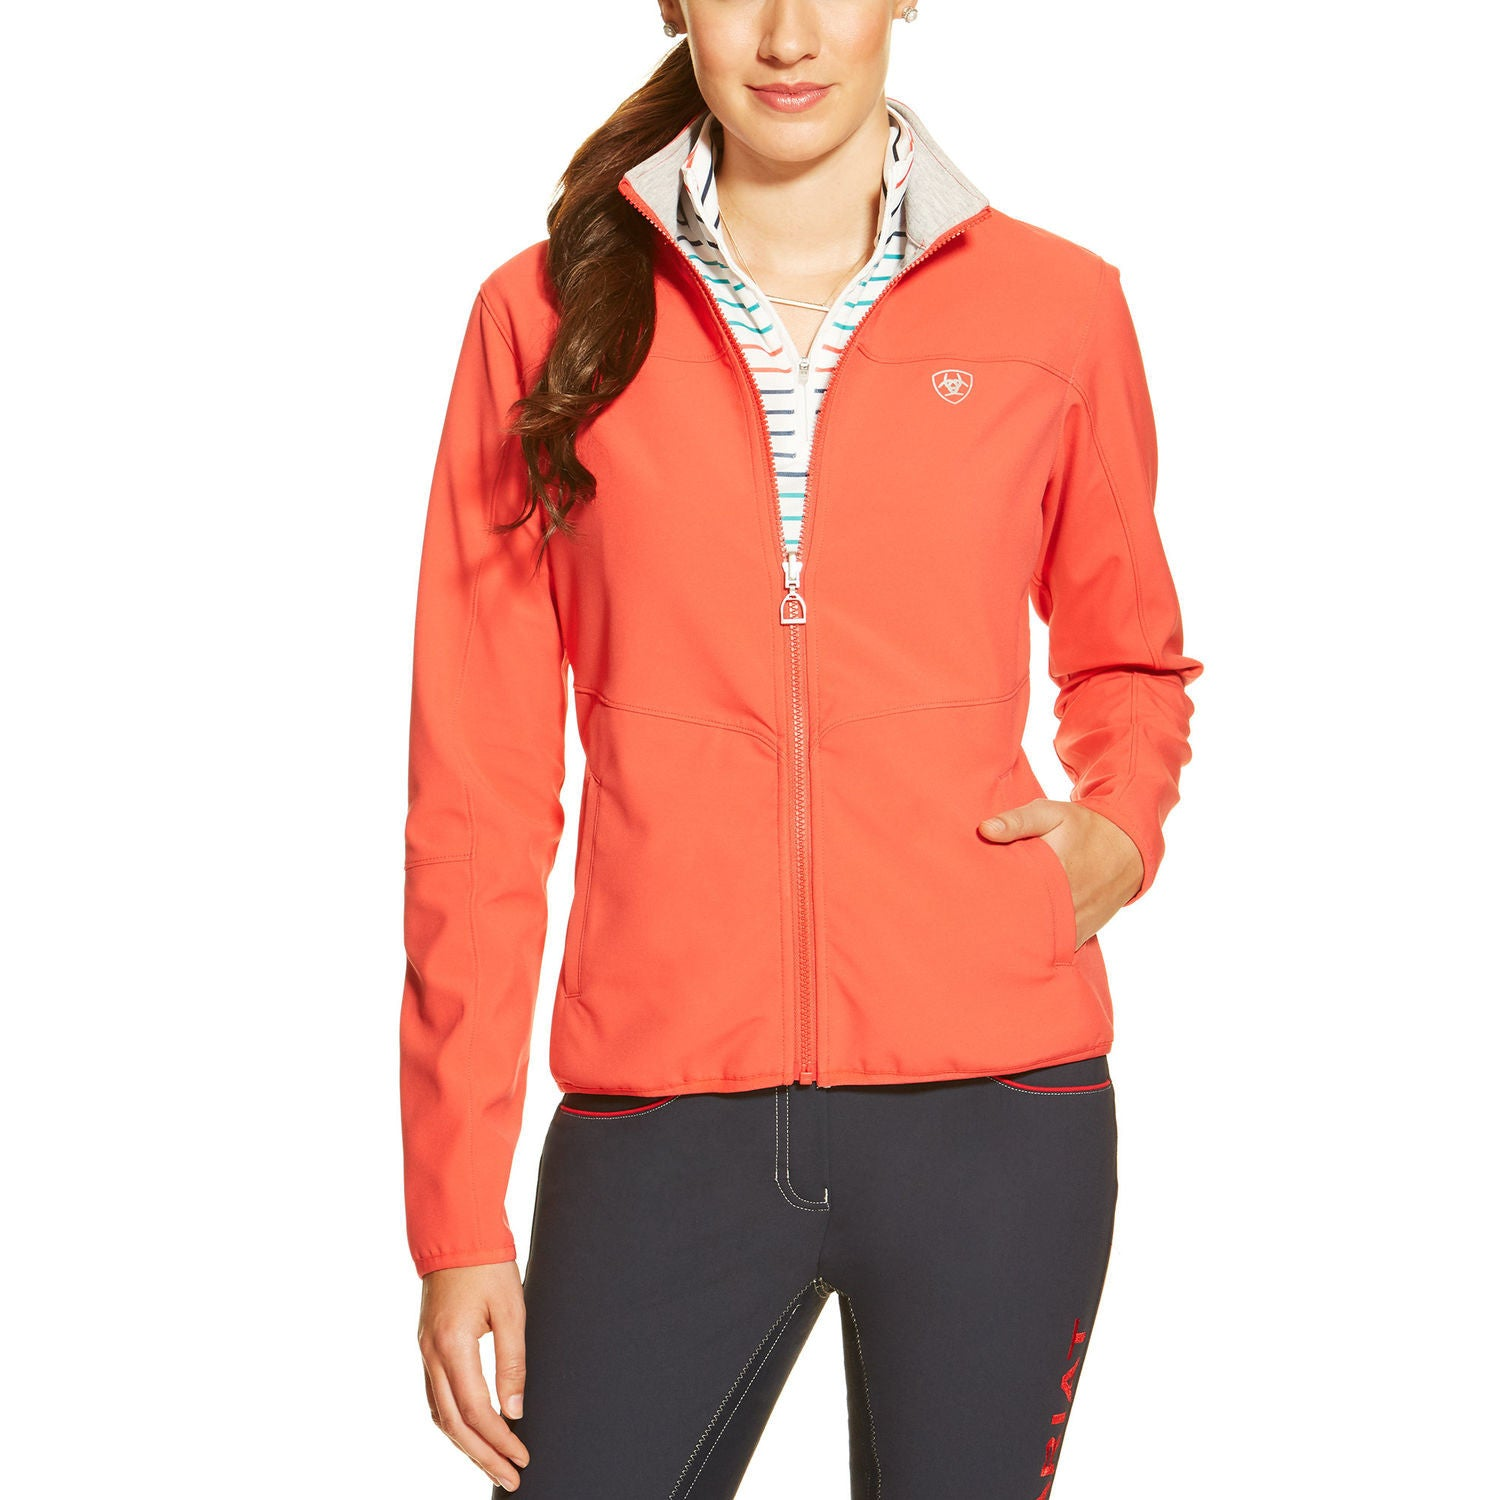 Ariat Morris Reversible Jacket in Flame - SALE - North Shore Saddlery